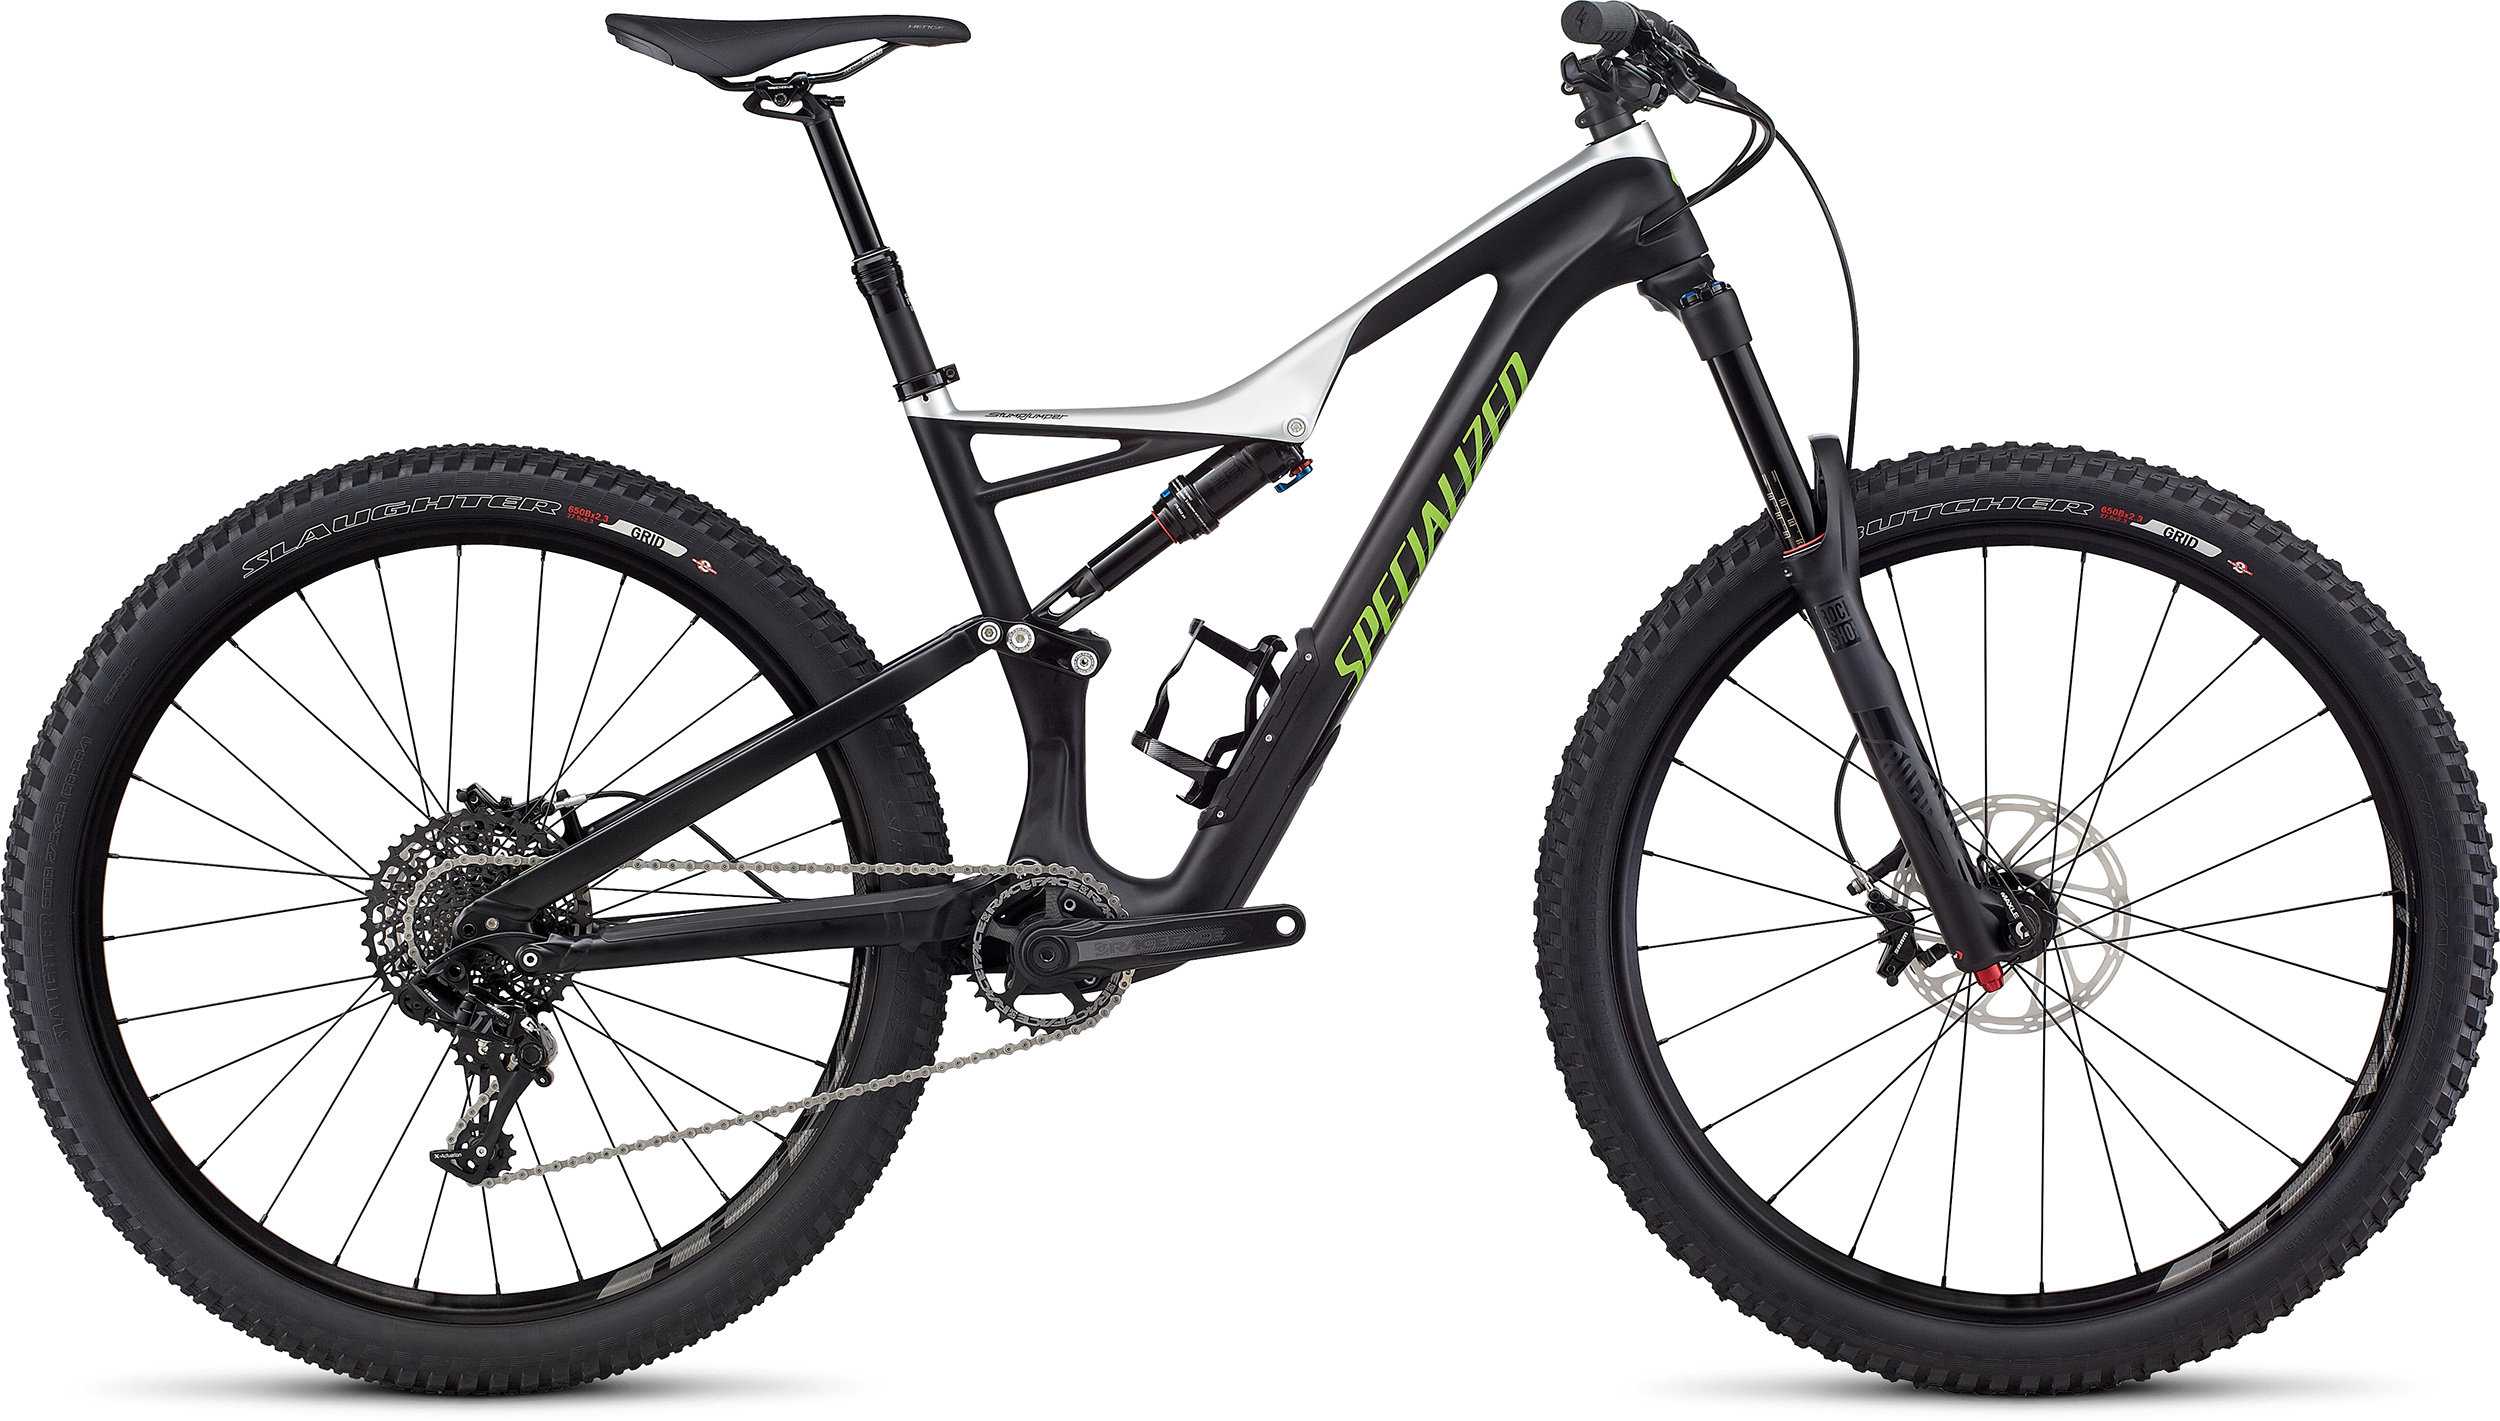 SPECIALIZED SJ FSR COMP CARBON 650B TARBLK/LTSIL/MONGRN L - Bike Zone